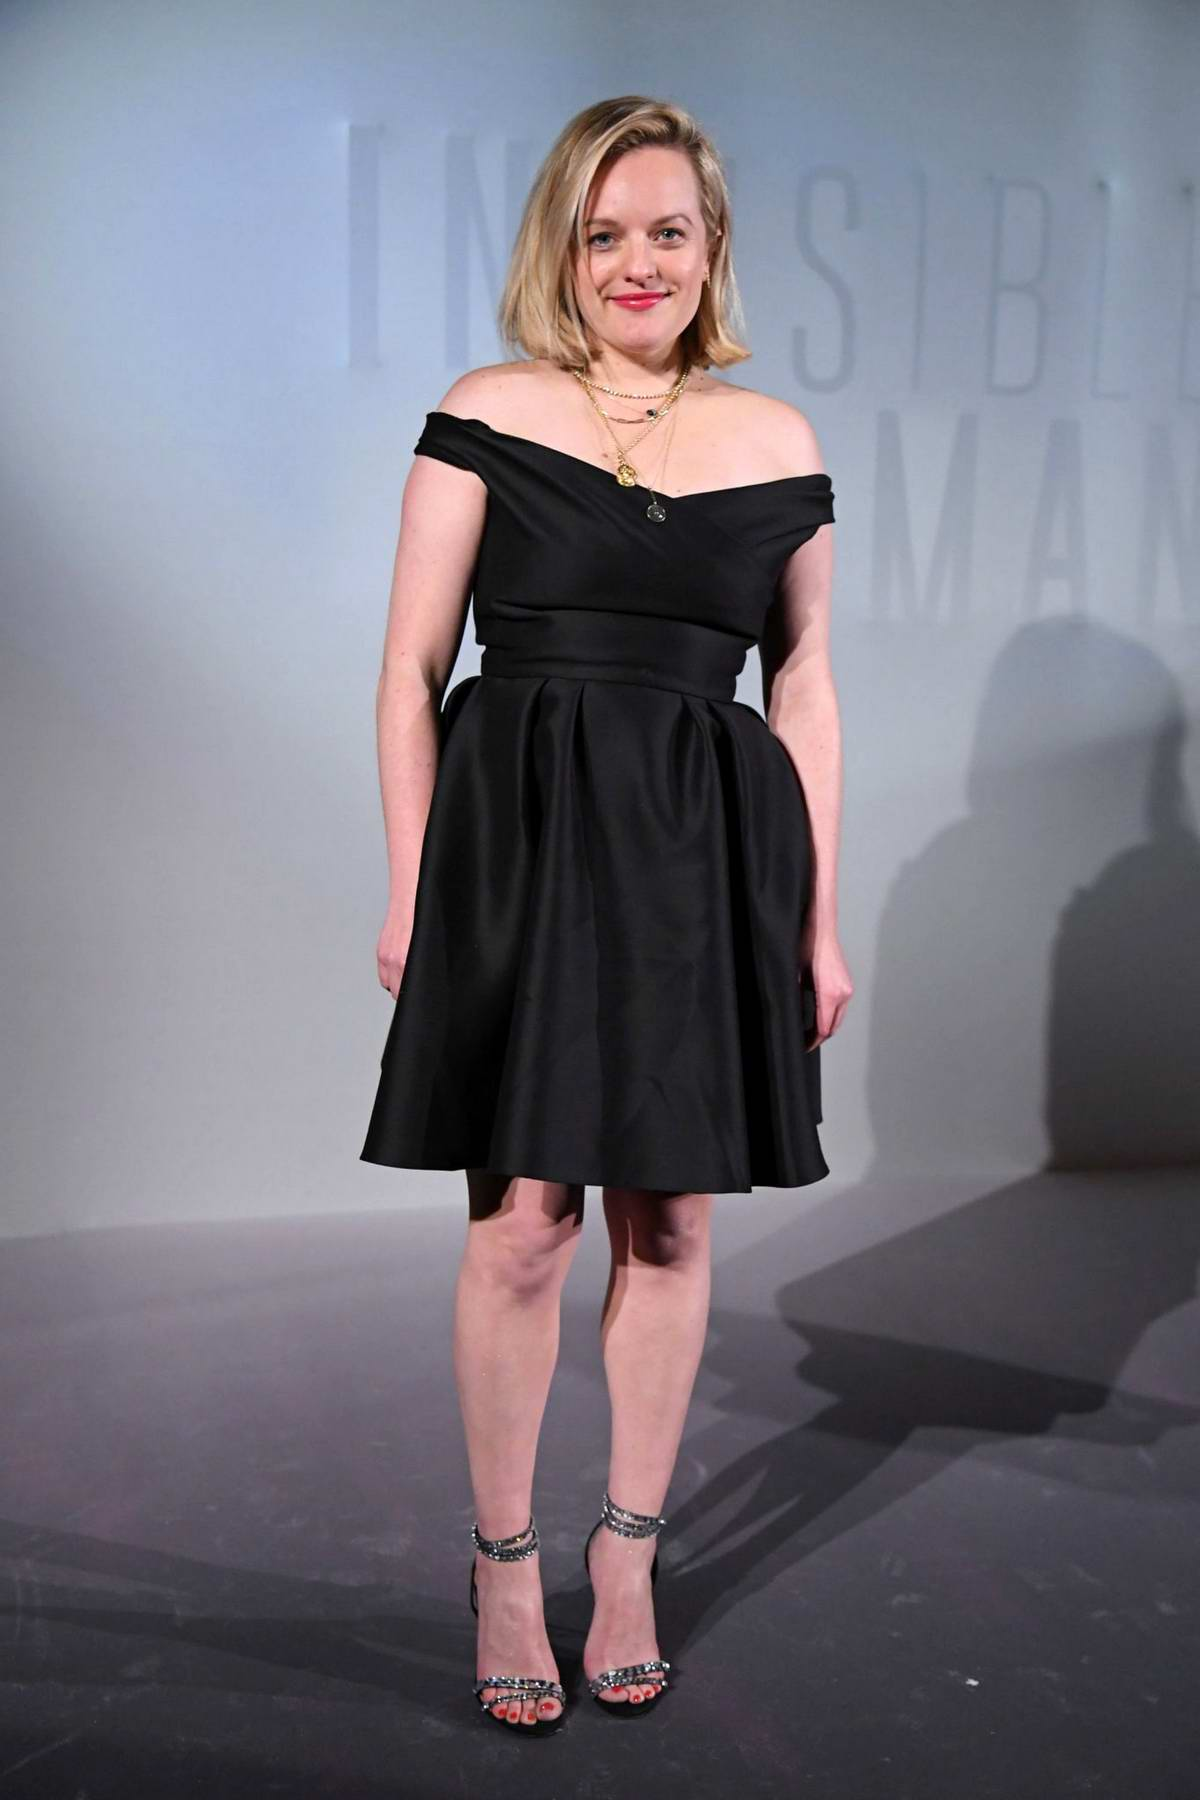 Elisabeth Moss attends the Premiere of 'The Invisible Man' in Paris, France